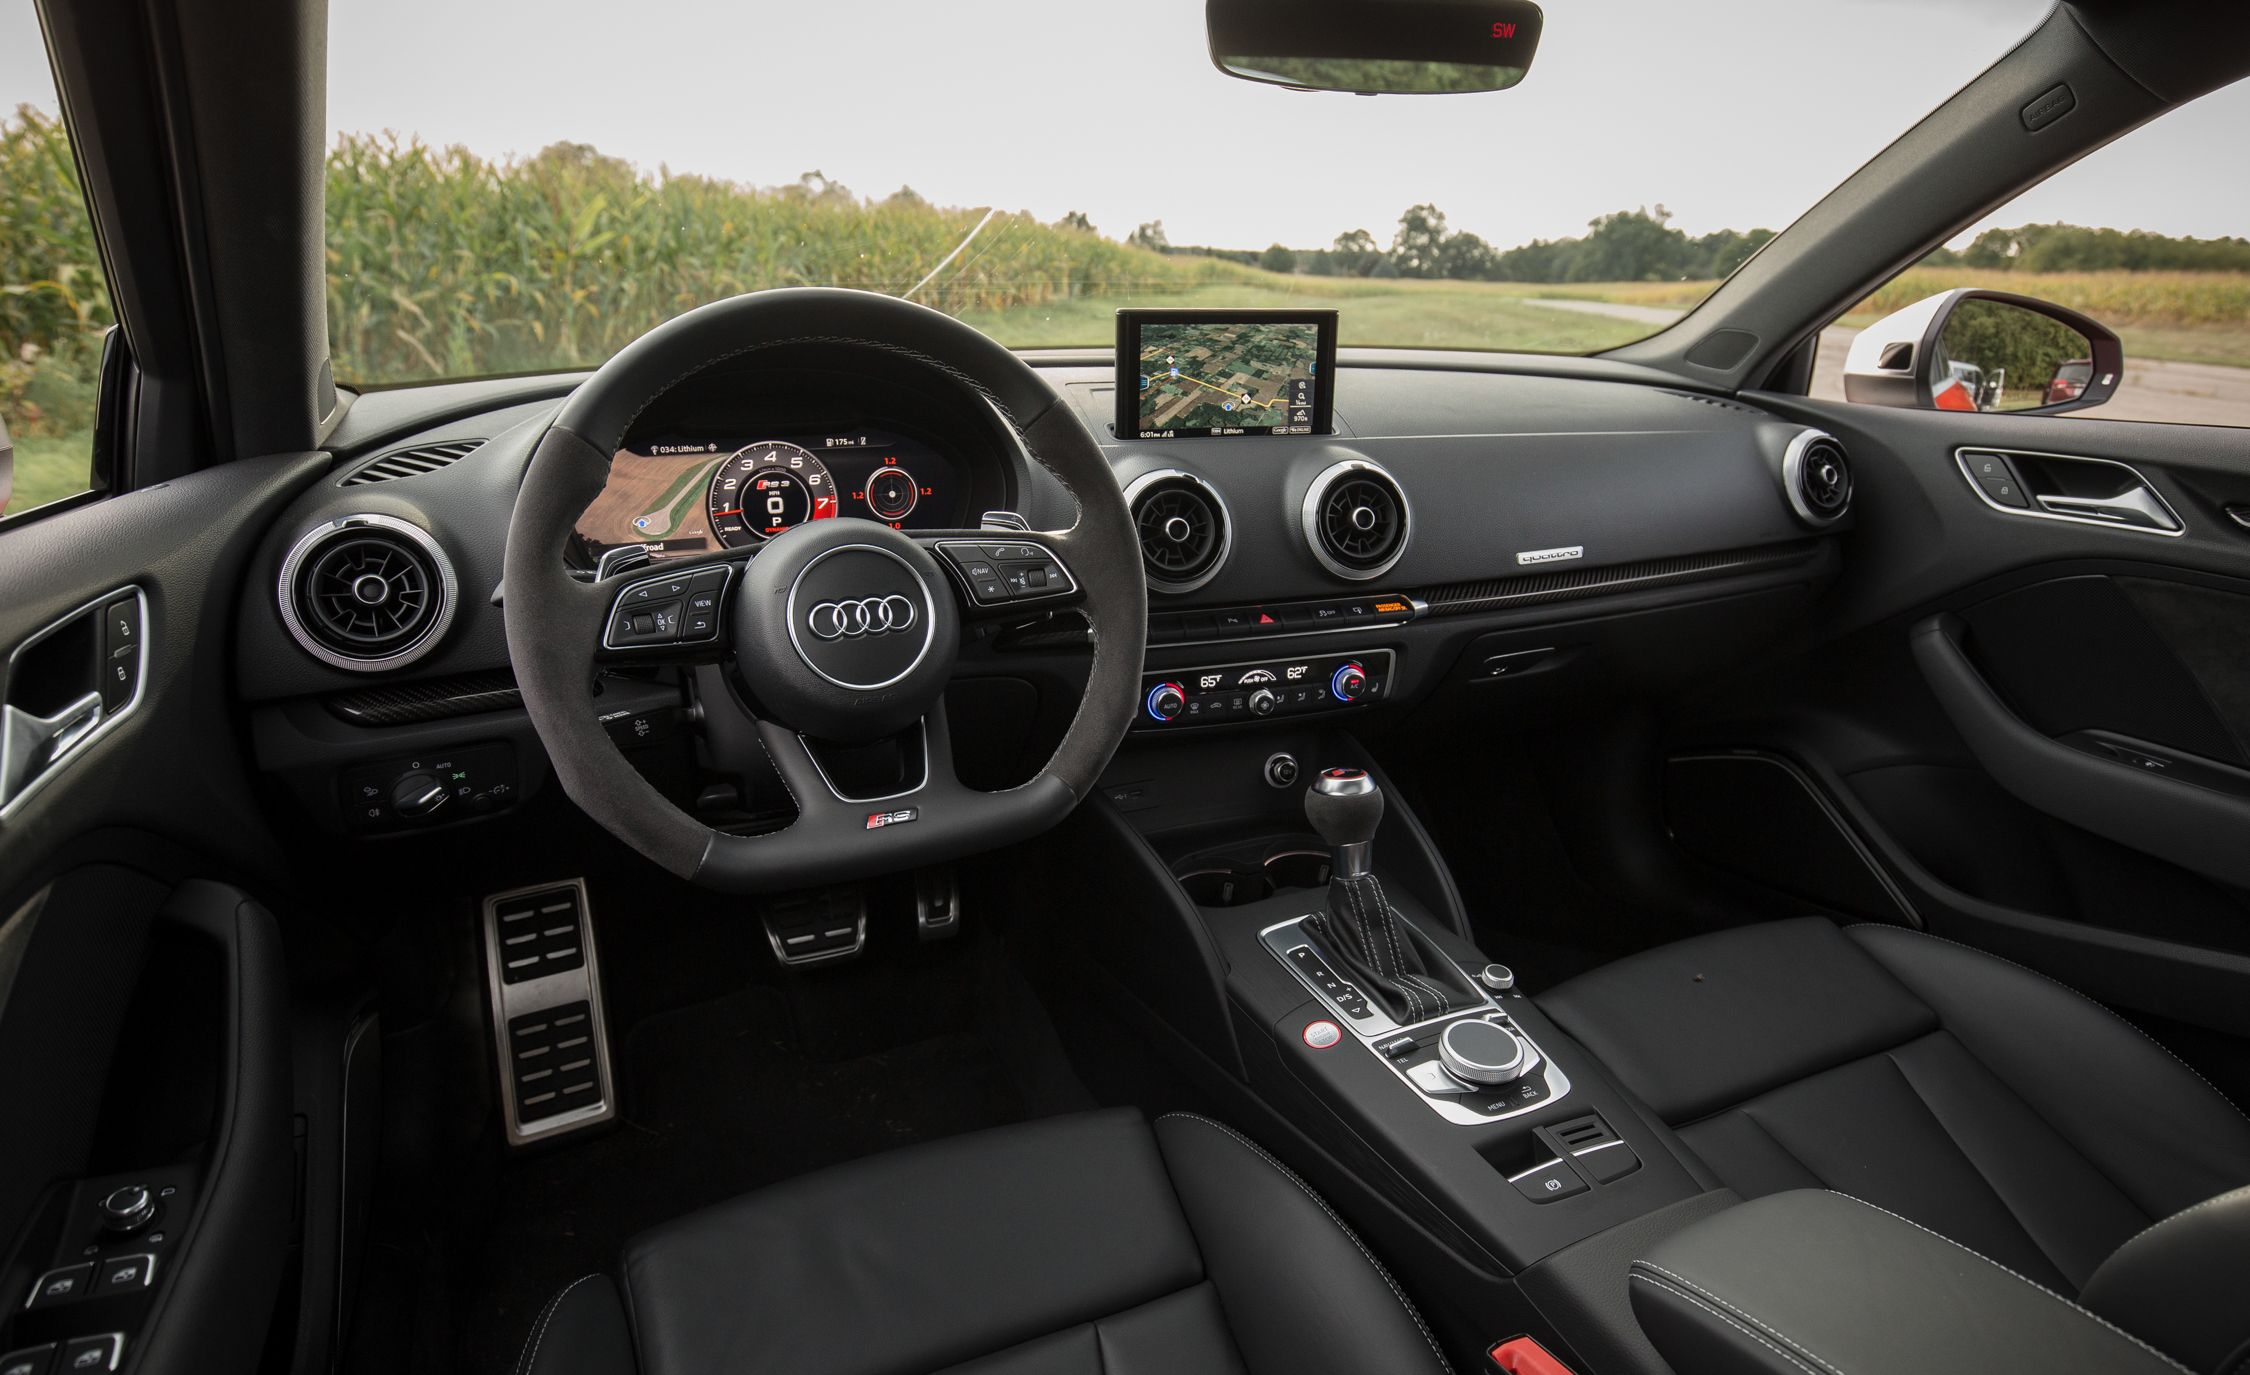 Help E46dawg Choose Between 2018 Audi Rs3 Or 2018 Audi S4 Bmw M3